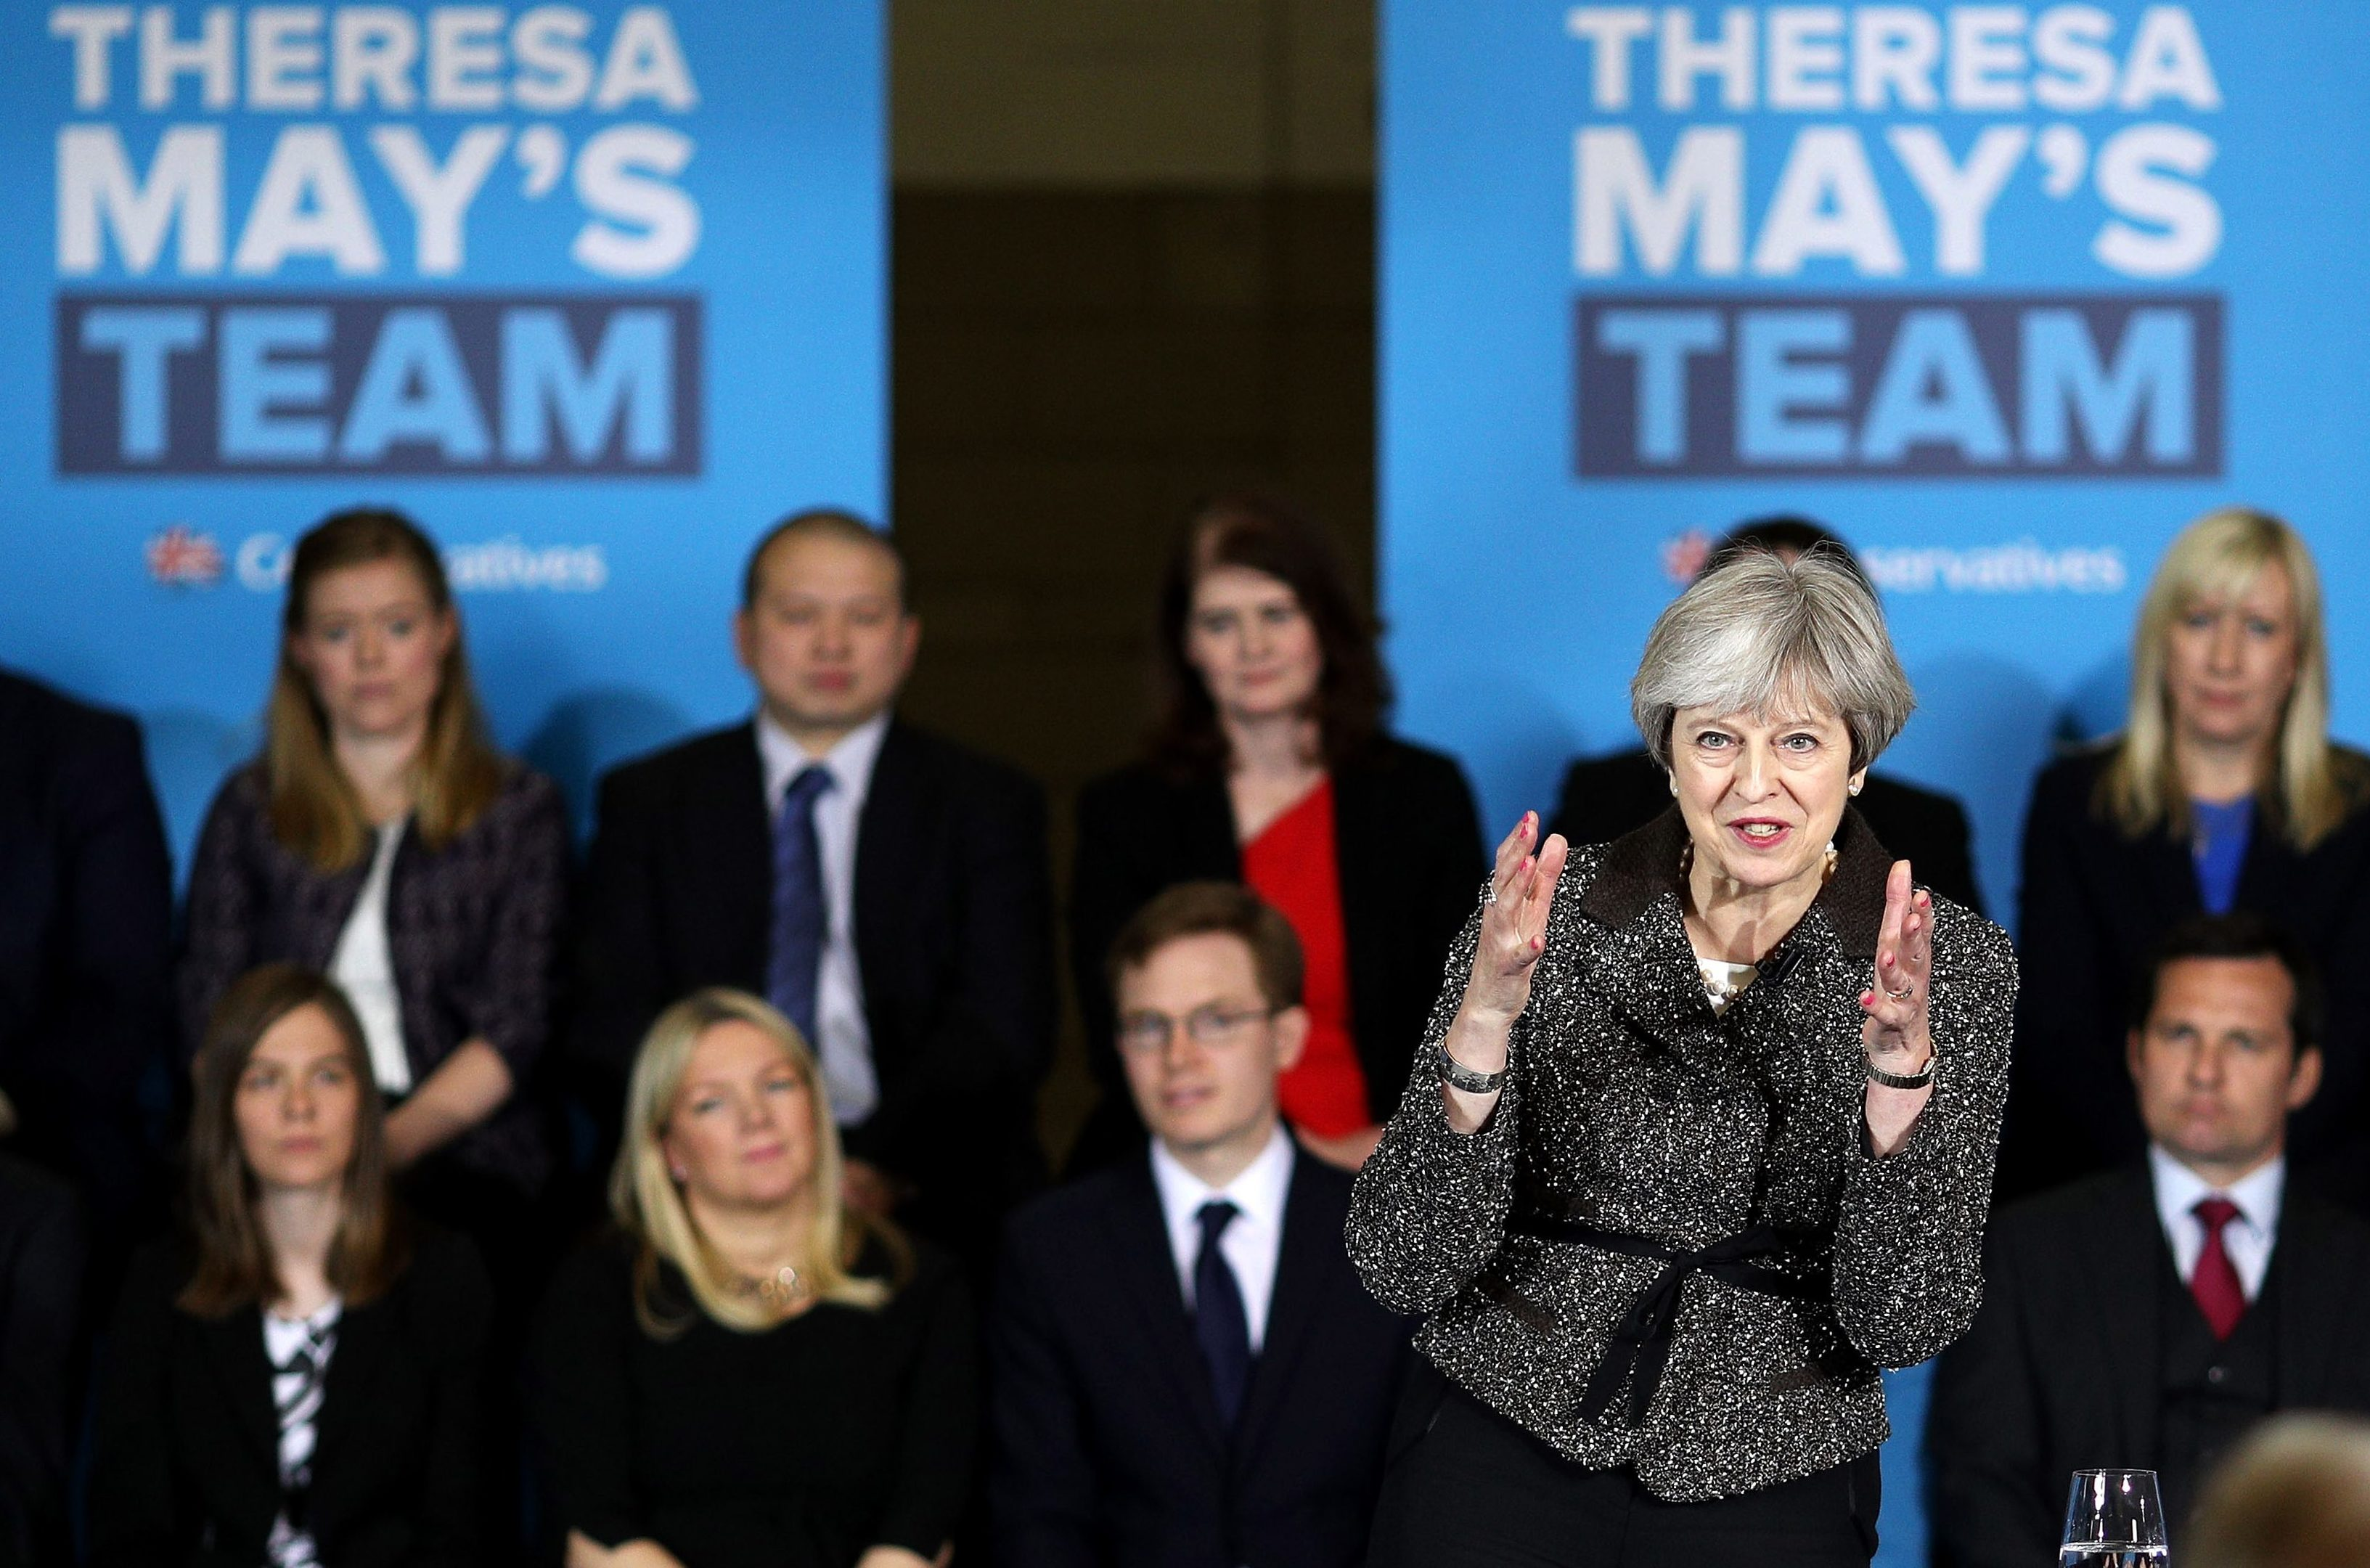 Prime Minister, Theresa May delivers a speech to activists, journalists and business leaders at York Barbican while campaigning in Yorkshire on May 9. Now FSB is calling for cheaper business costs.